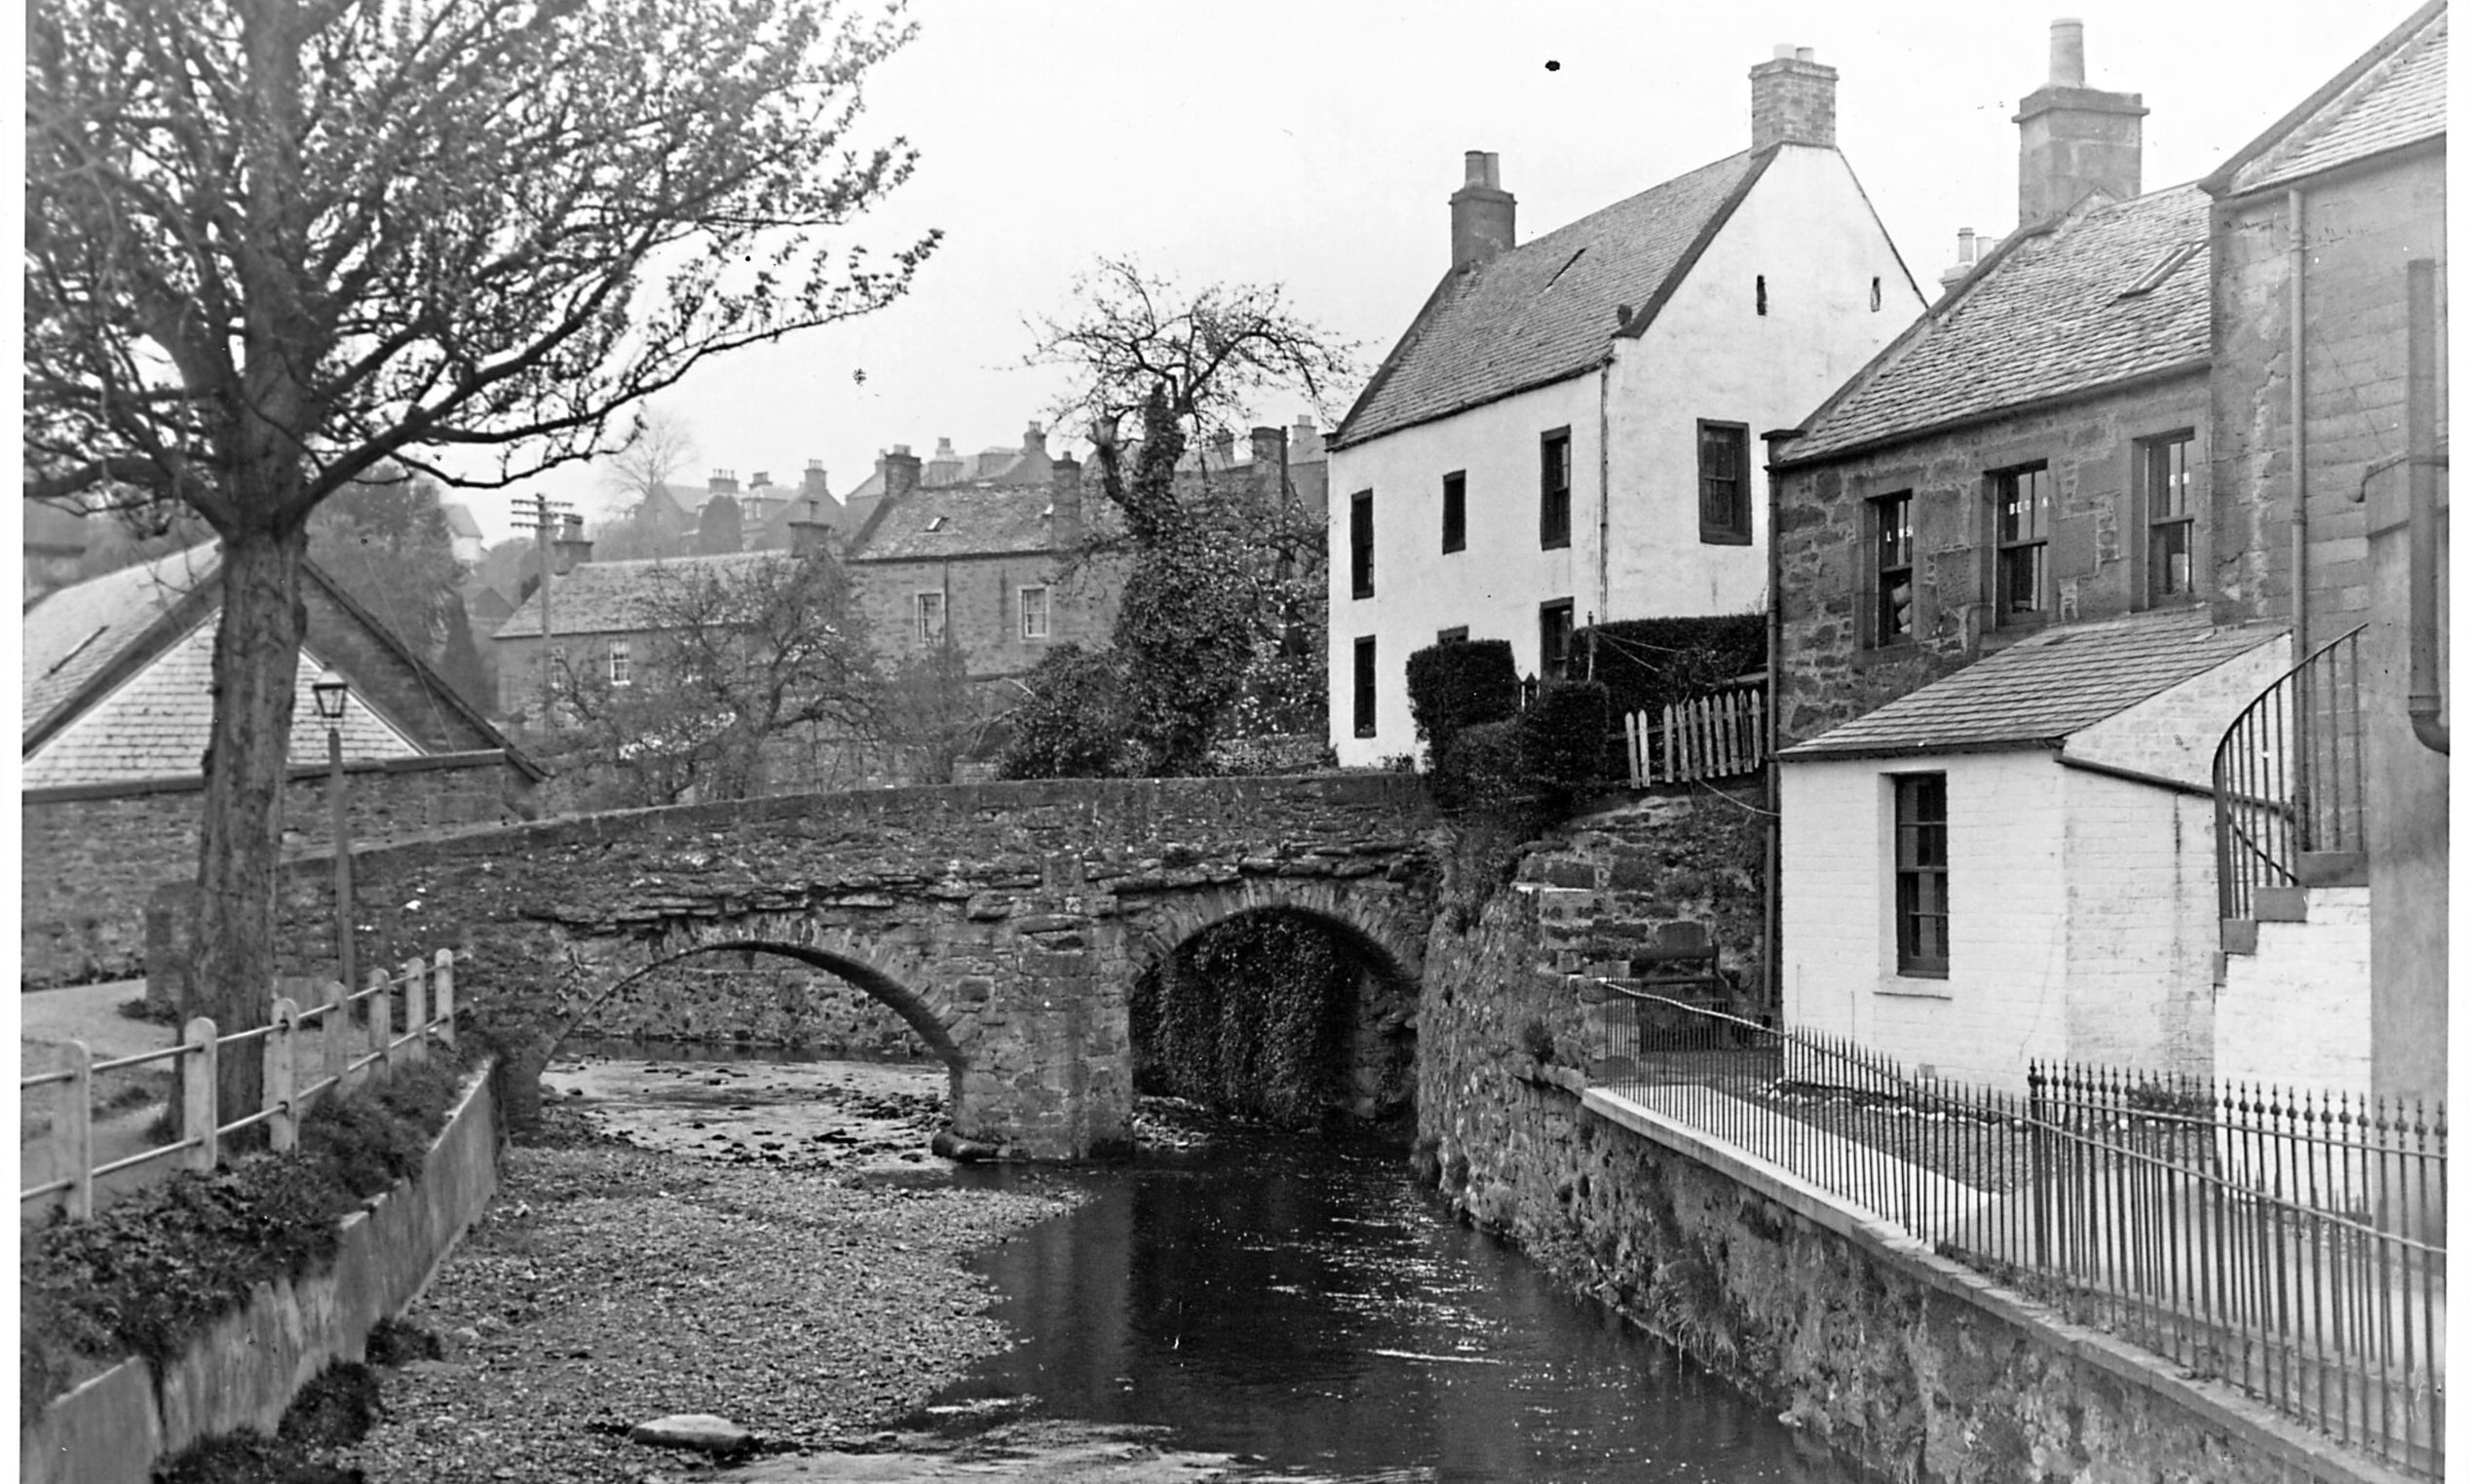 A bridge over the Alyth Burn in days gone by. Alyth was one of the communities the ghost is said to have haunted.